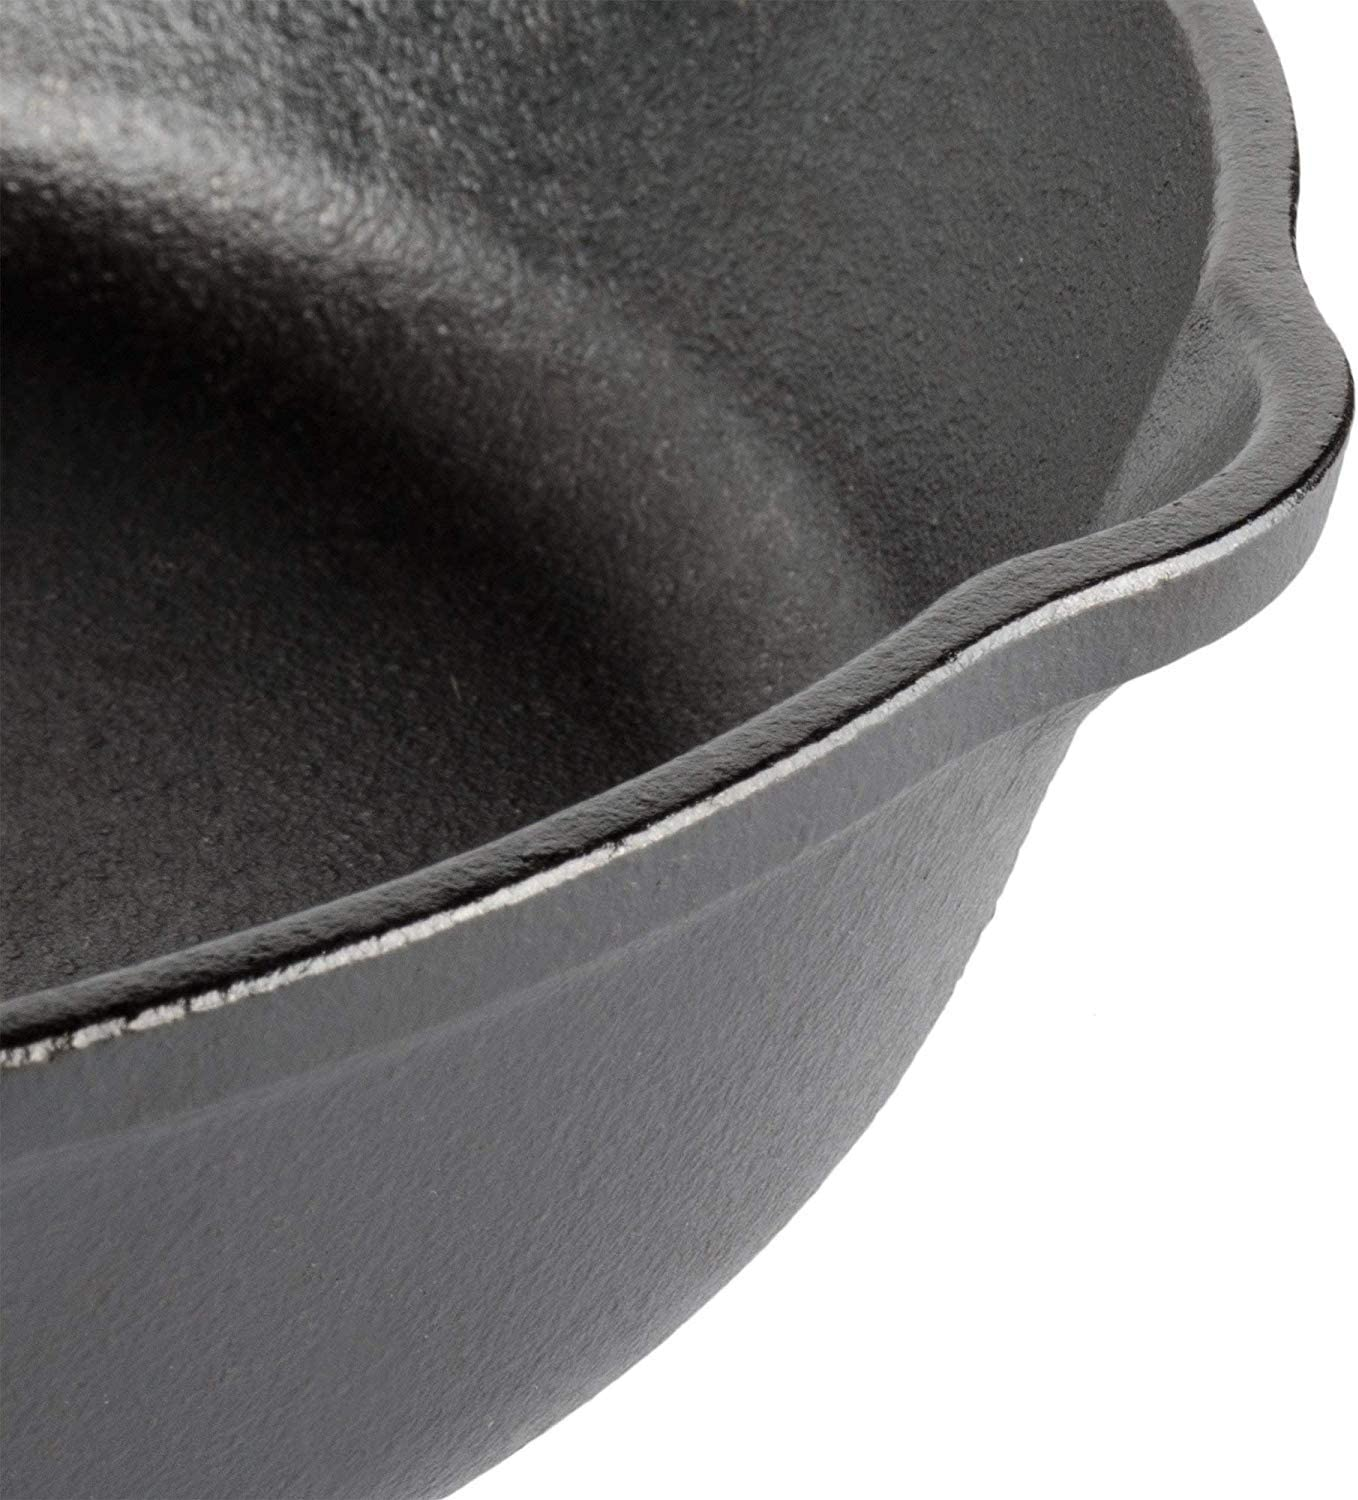 Lodge 13.25 Inch Cast Iron Skillet with Cover, Pre Seasoned and Ready for Stovetop, Oven Cooking, Large and Classic for Family Size Meals, Grill, Induction Safe, Bundle includes Salient Home Cookbook